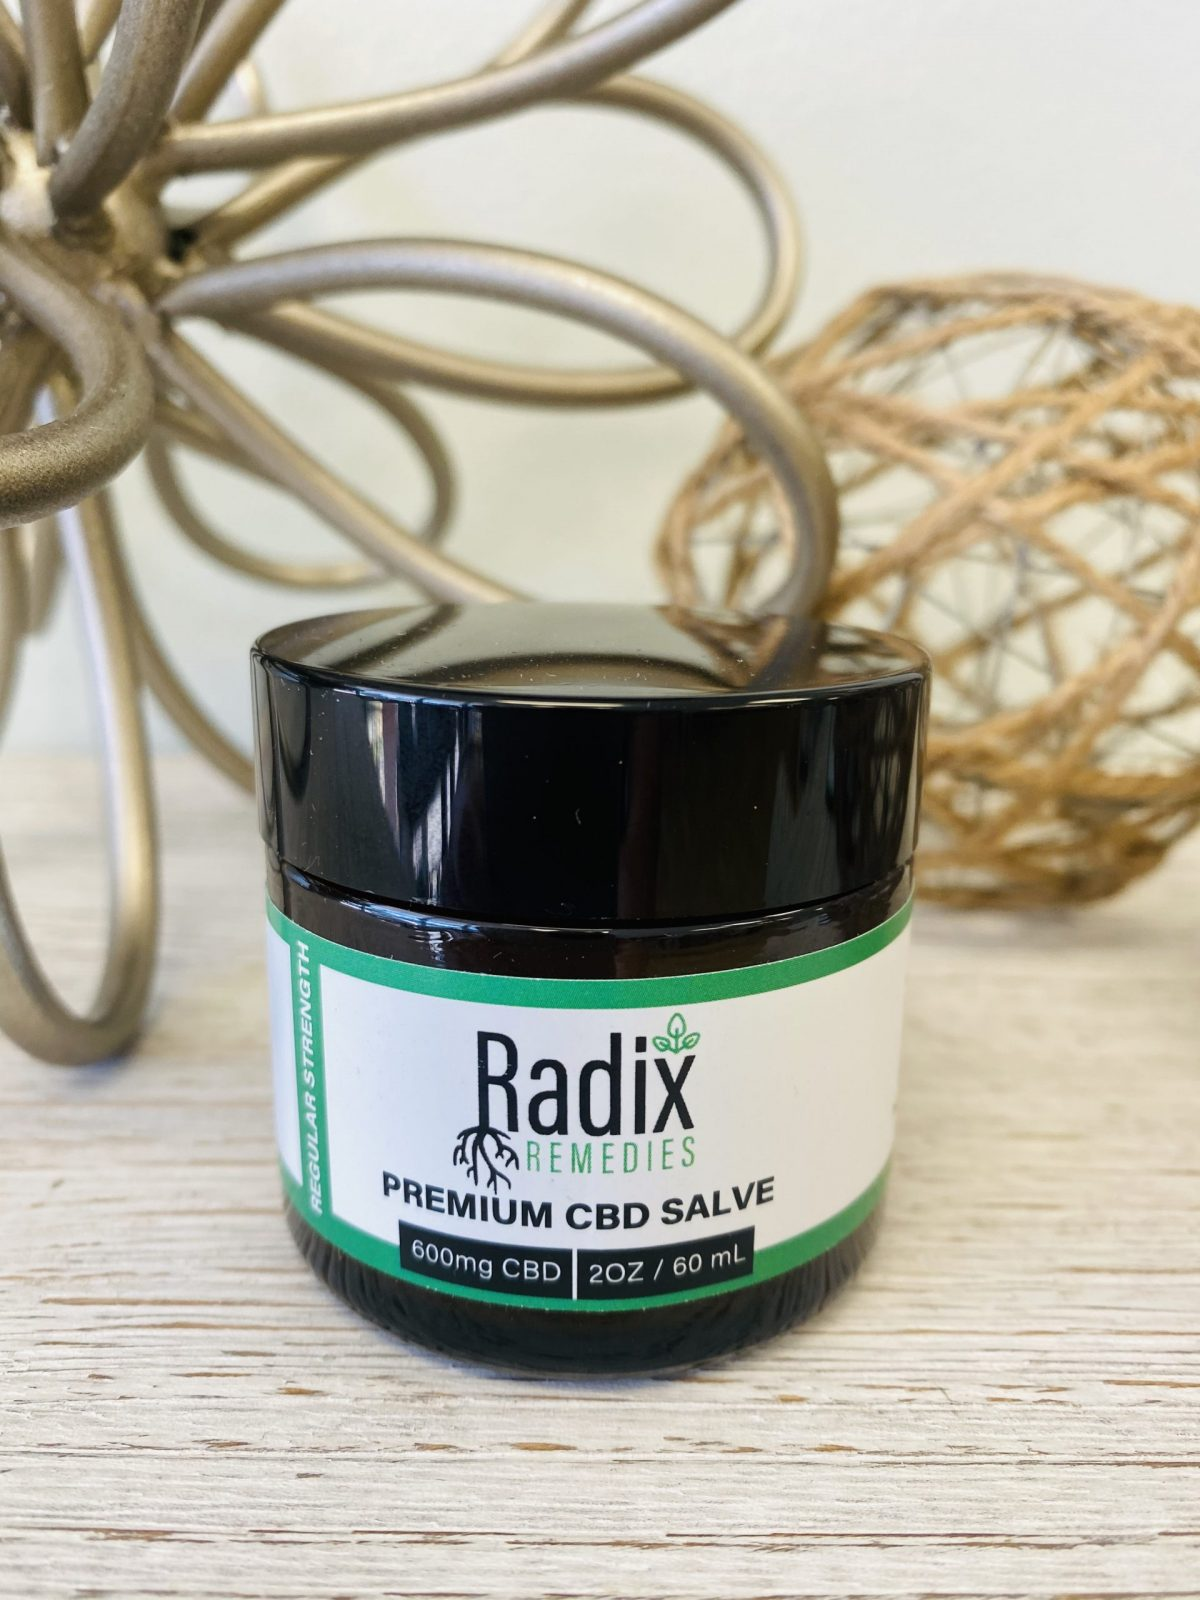 Radix 600mg CBD Pain Salve 2 oz